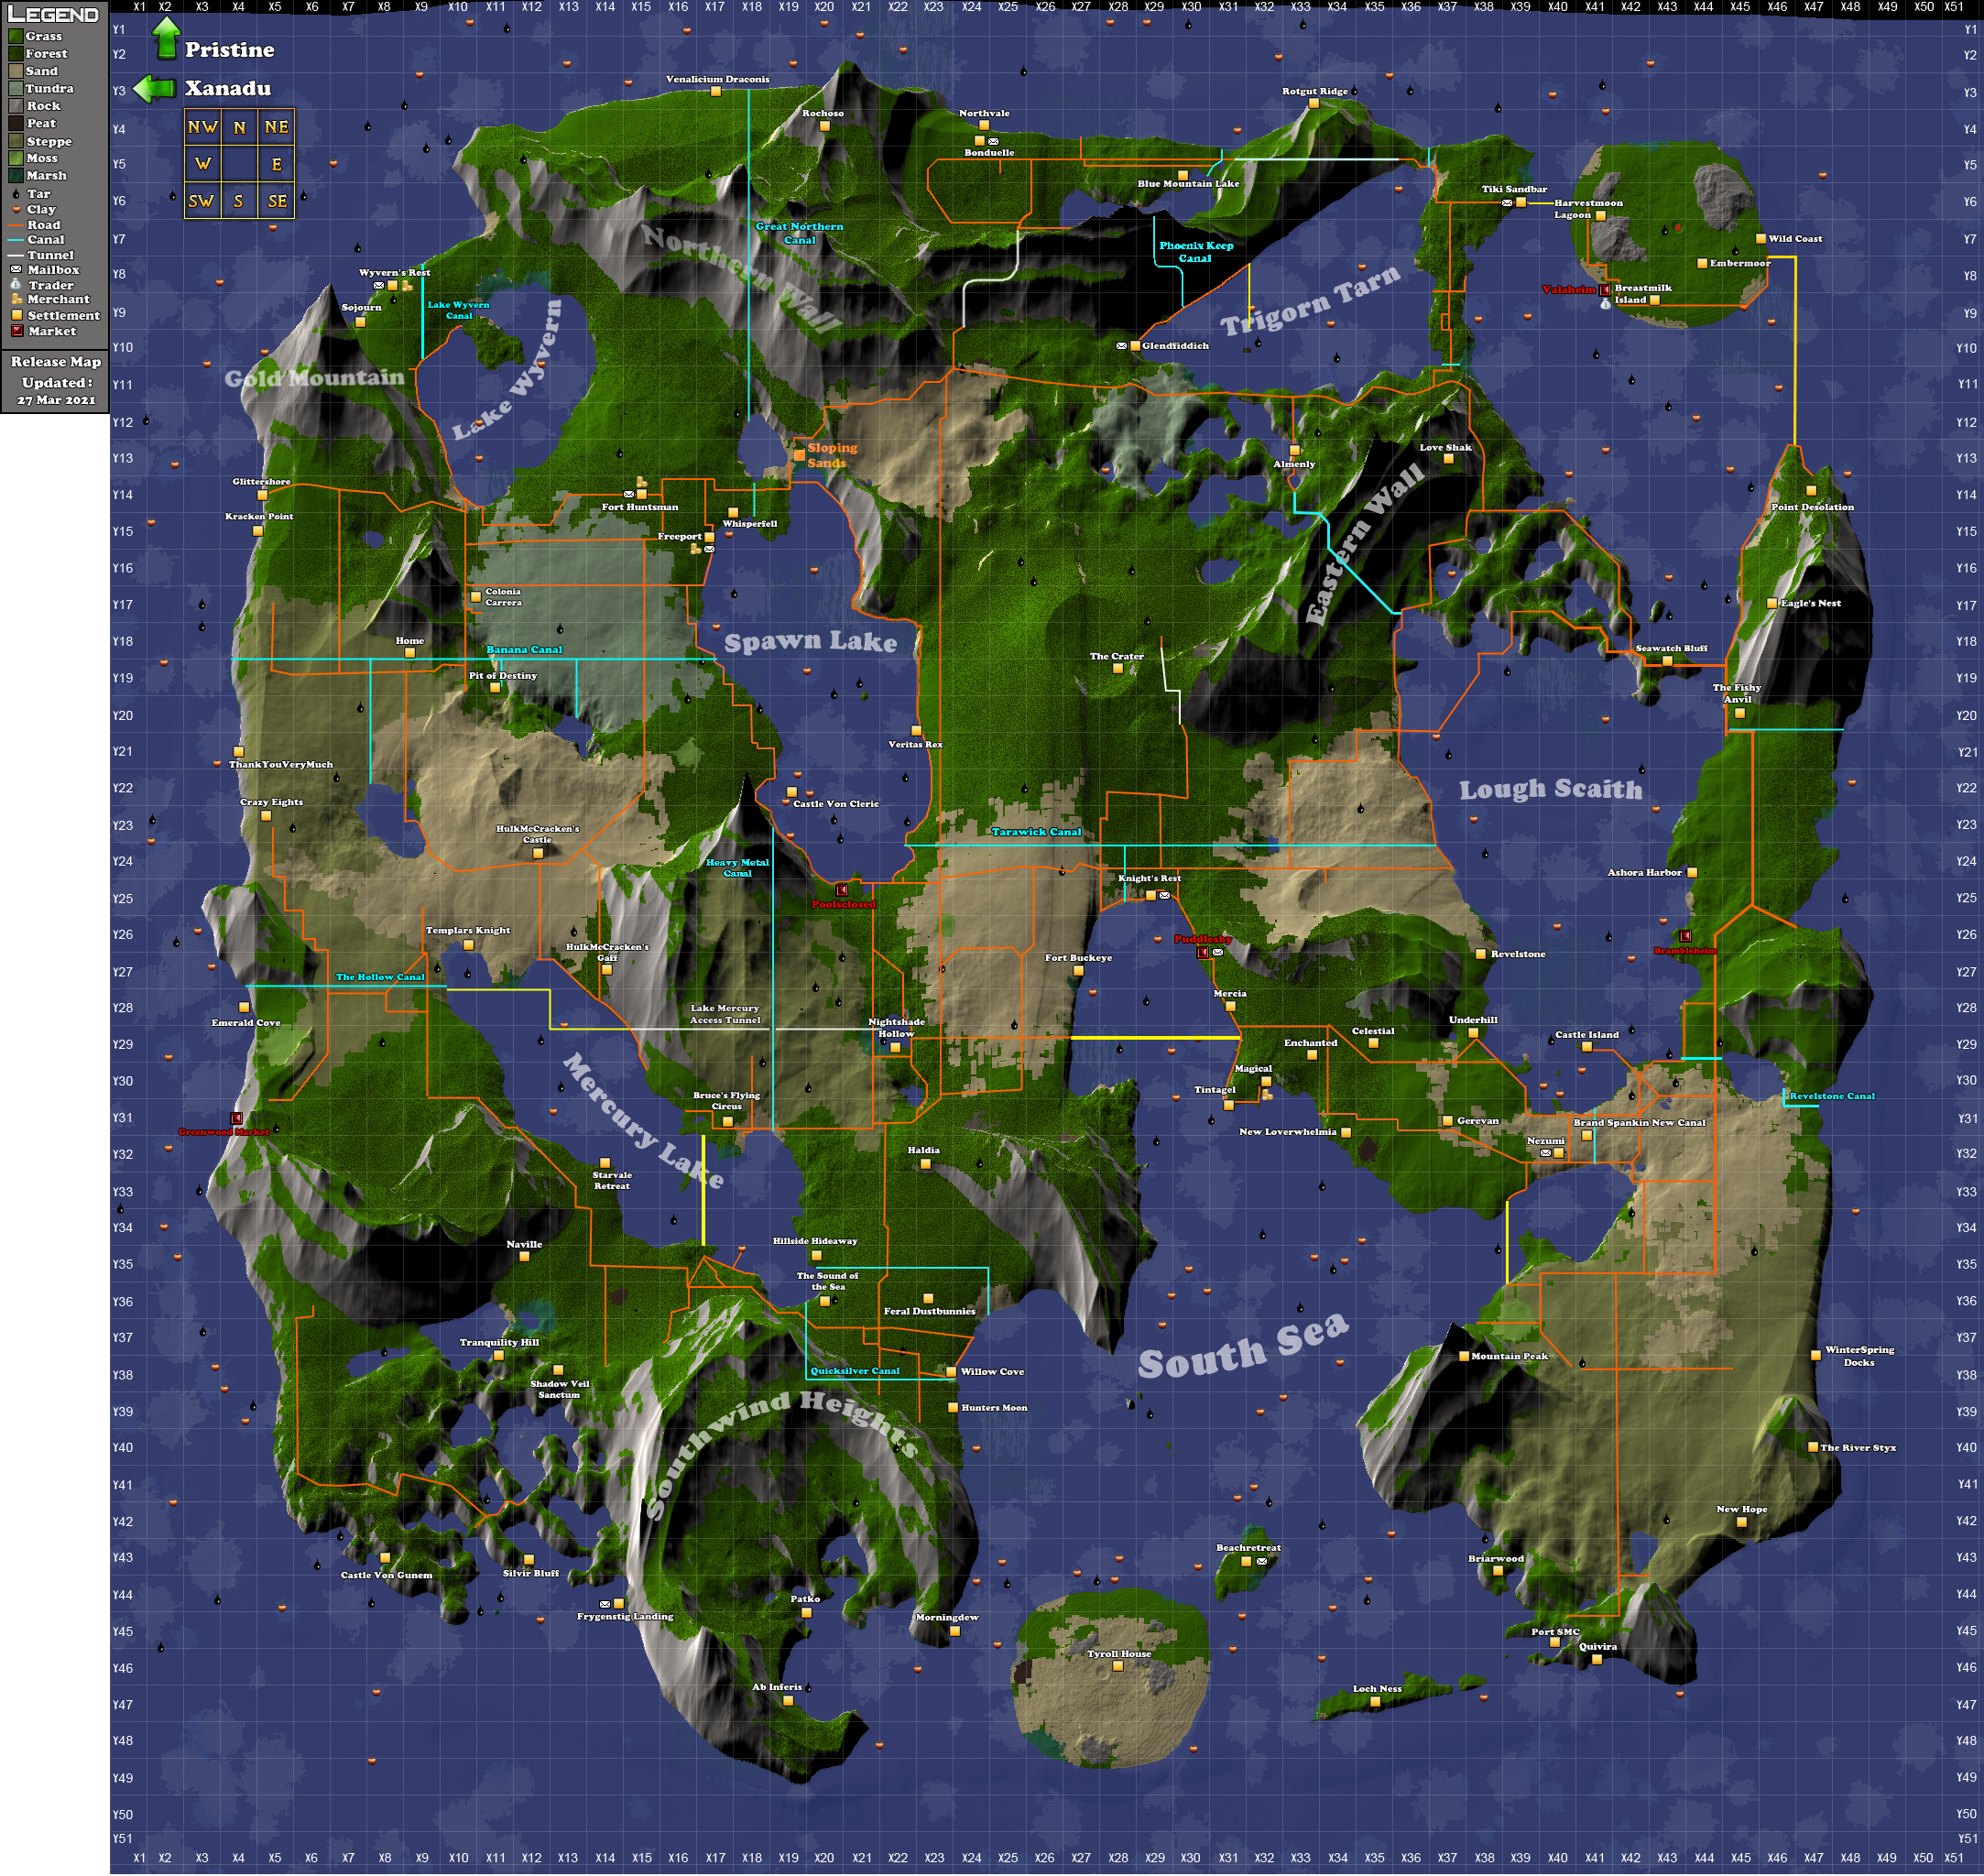 release%20map.png?dl=0